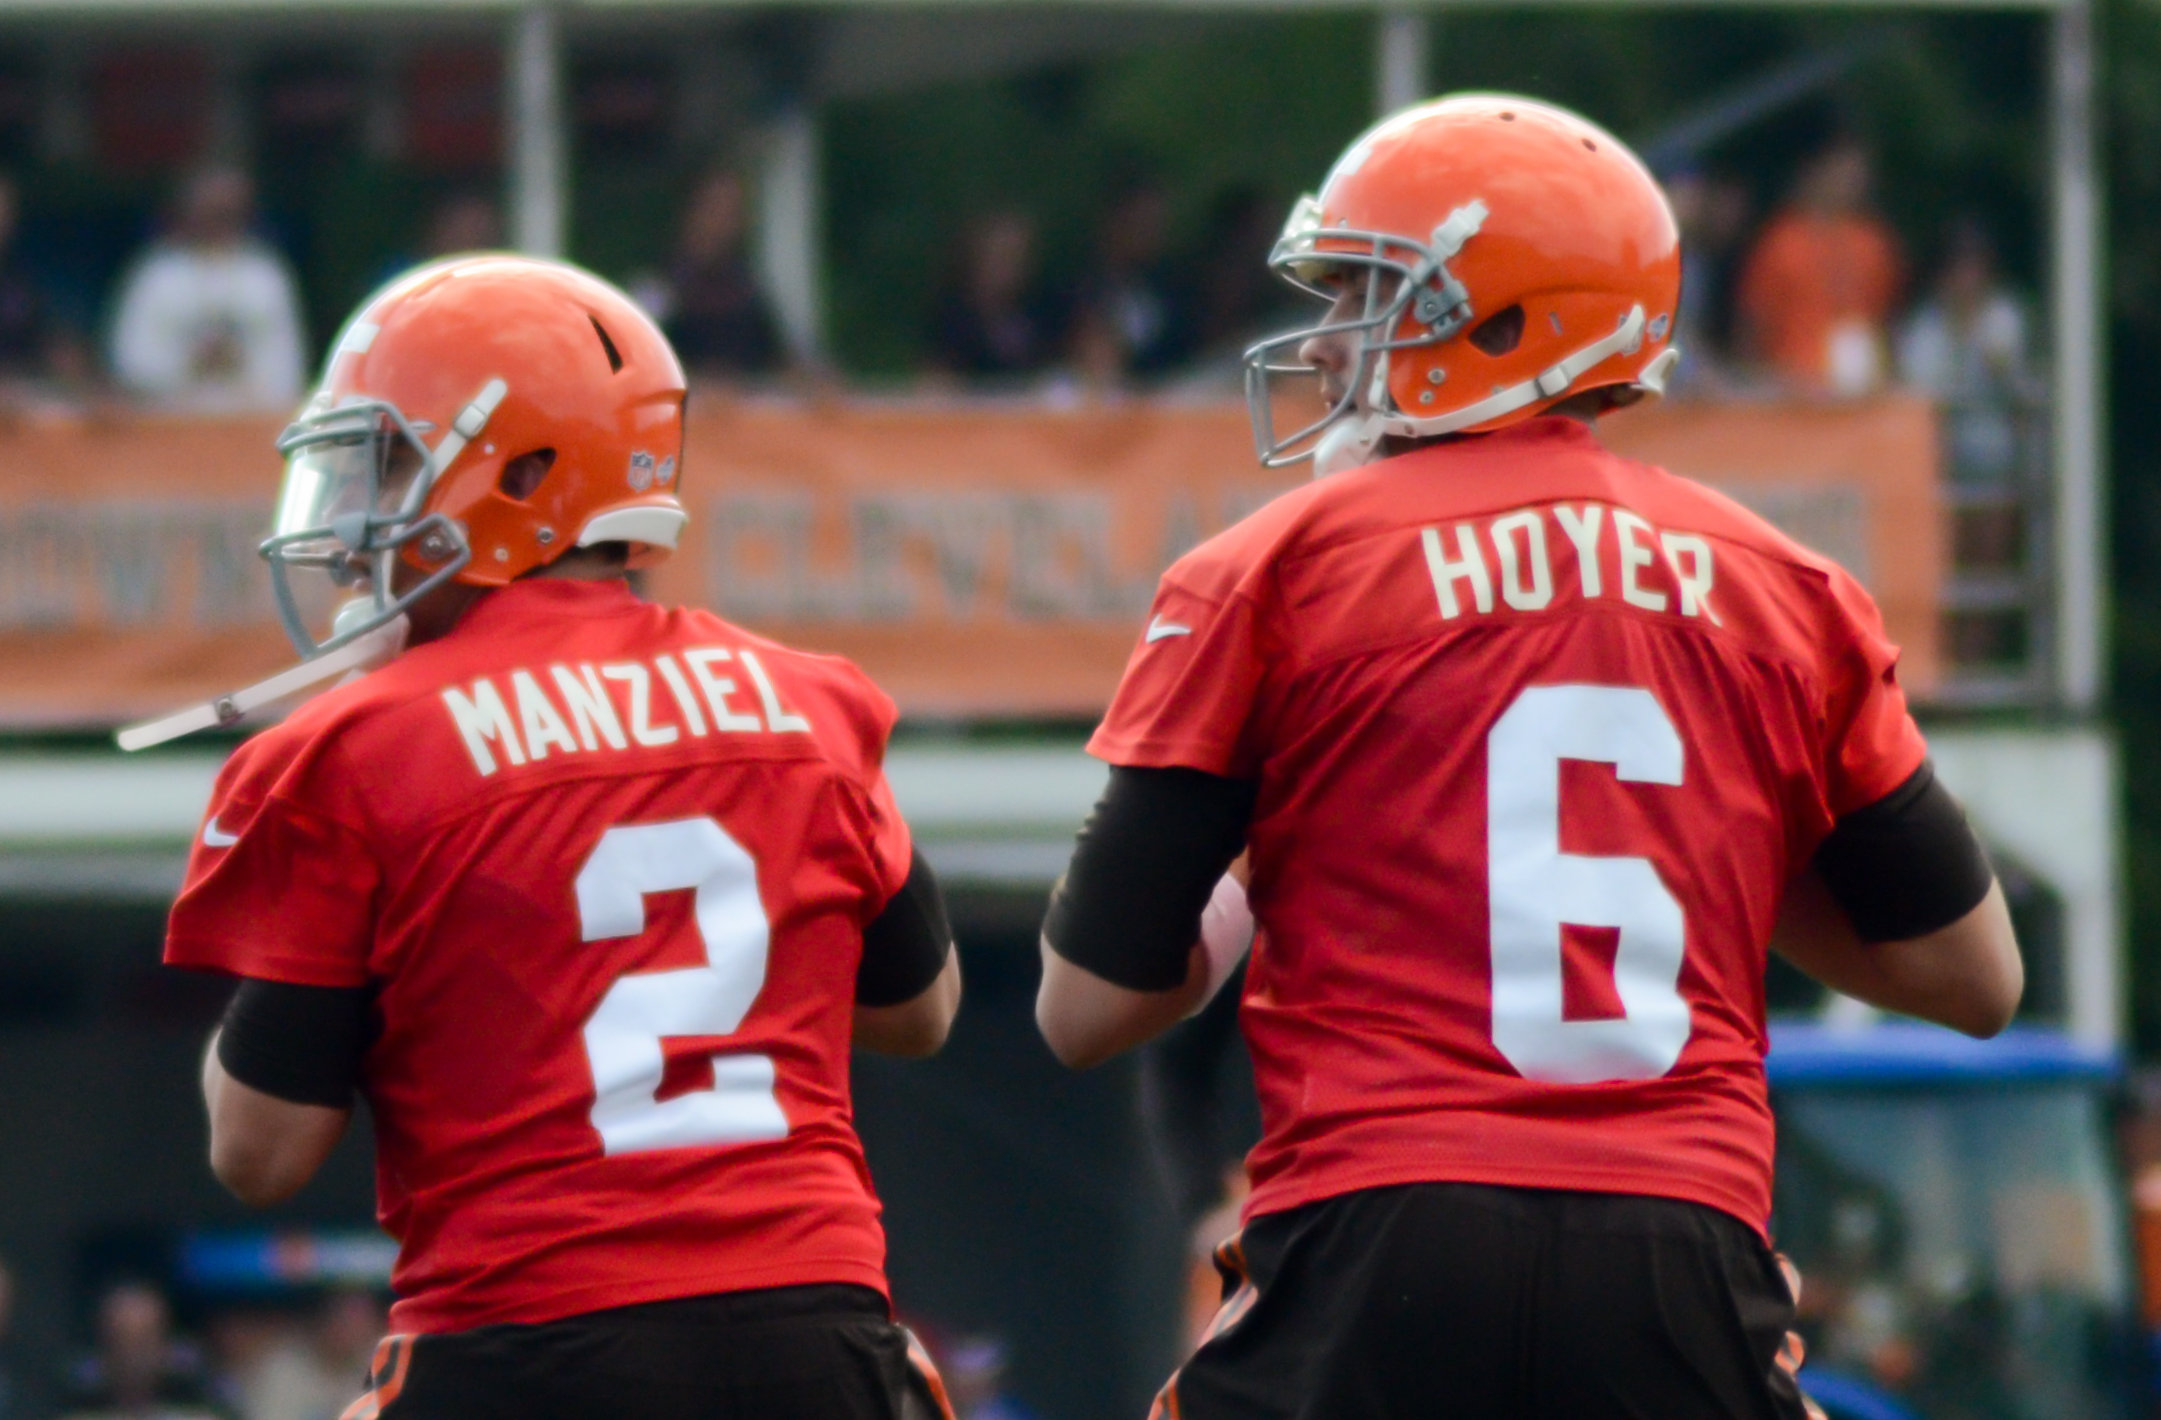 Head to Head: Hoyer vs Manziel